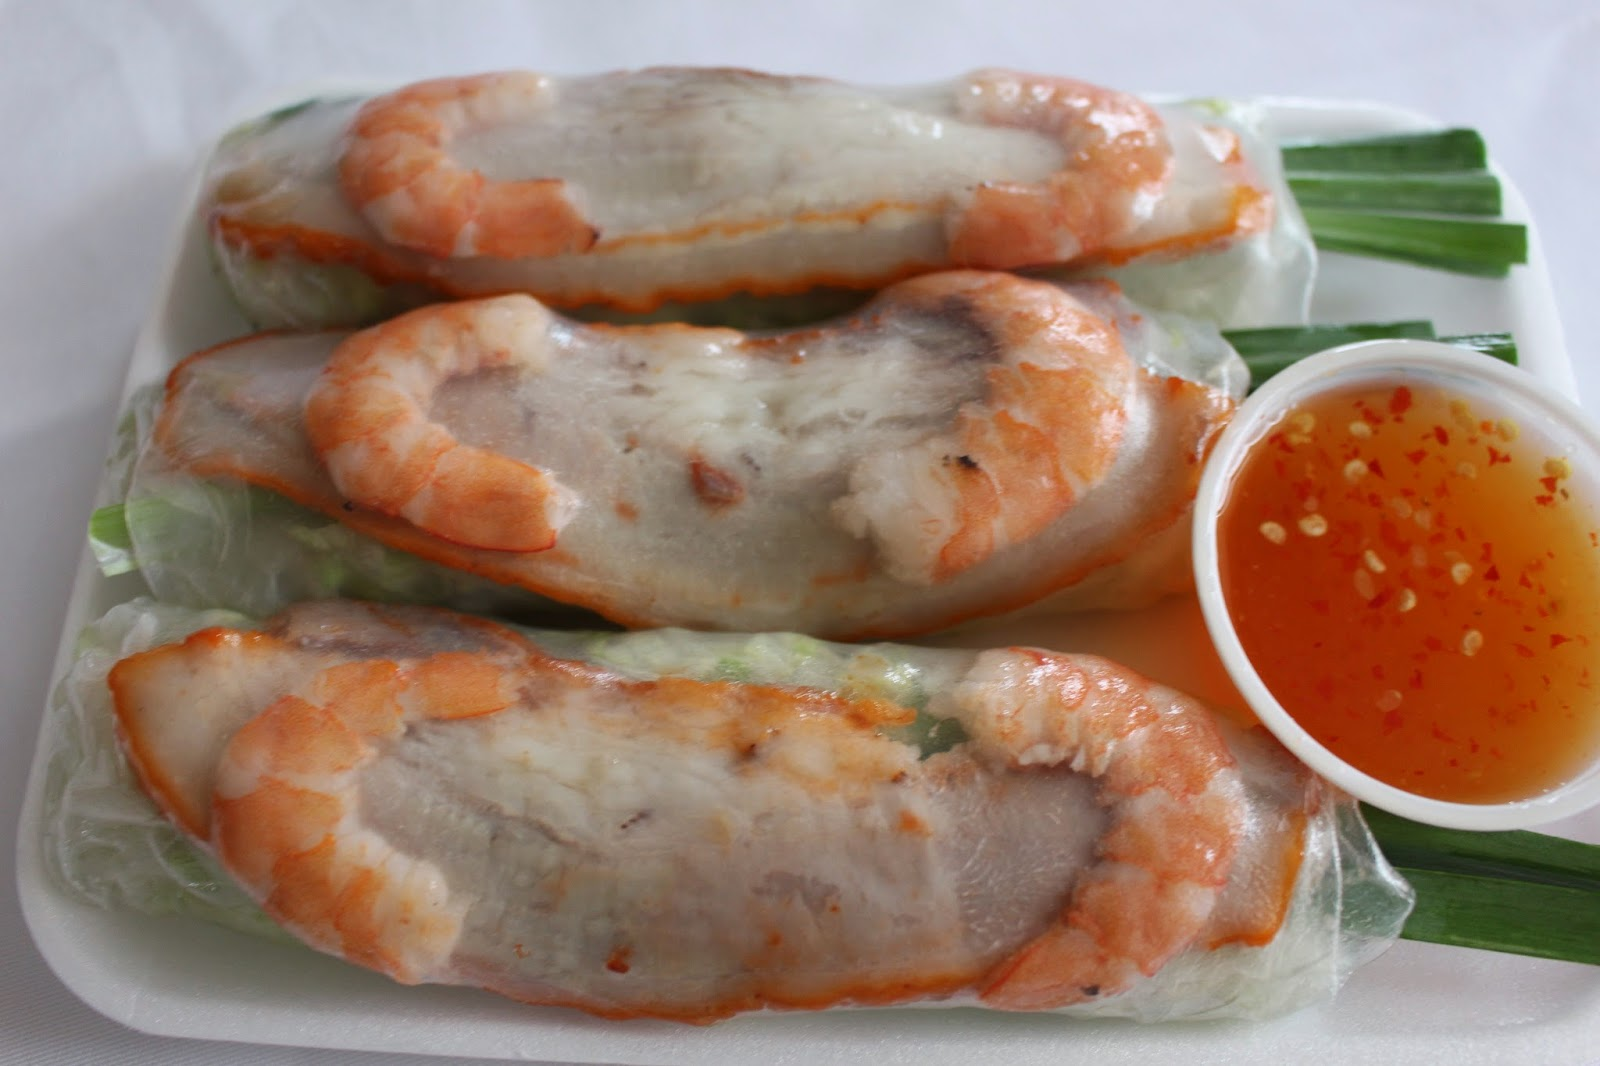 Mami Eggroll Banh Mi Sandwiches And More At Hong Cuc In